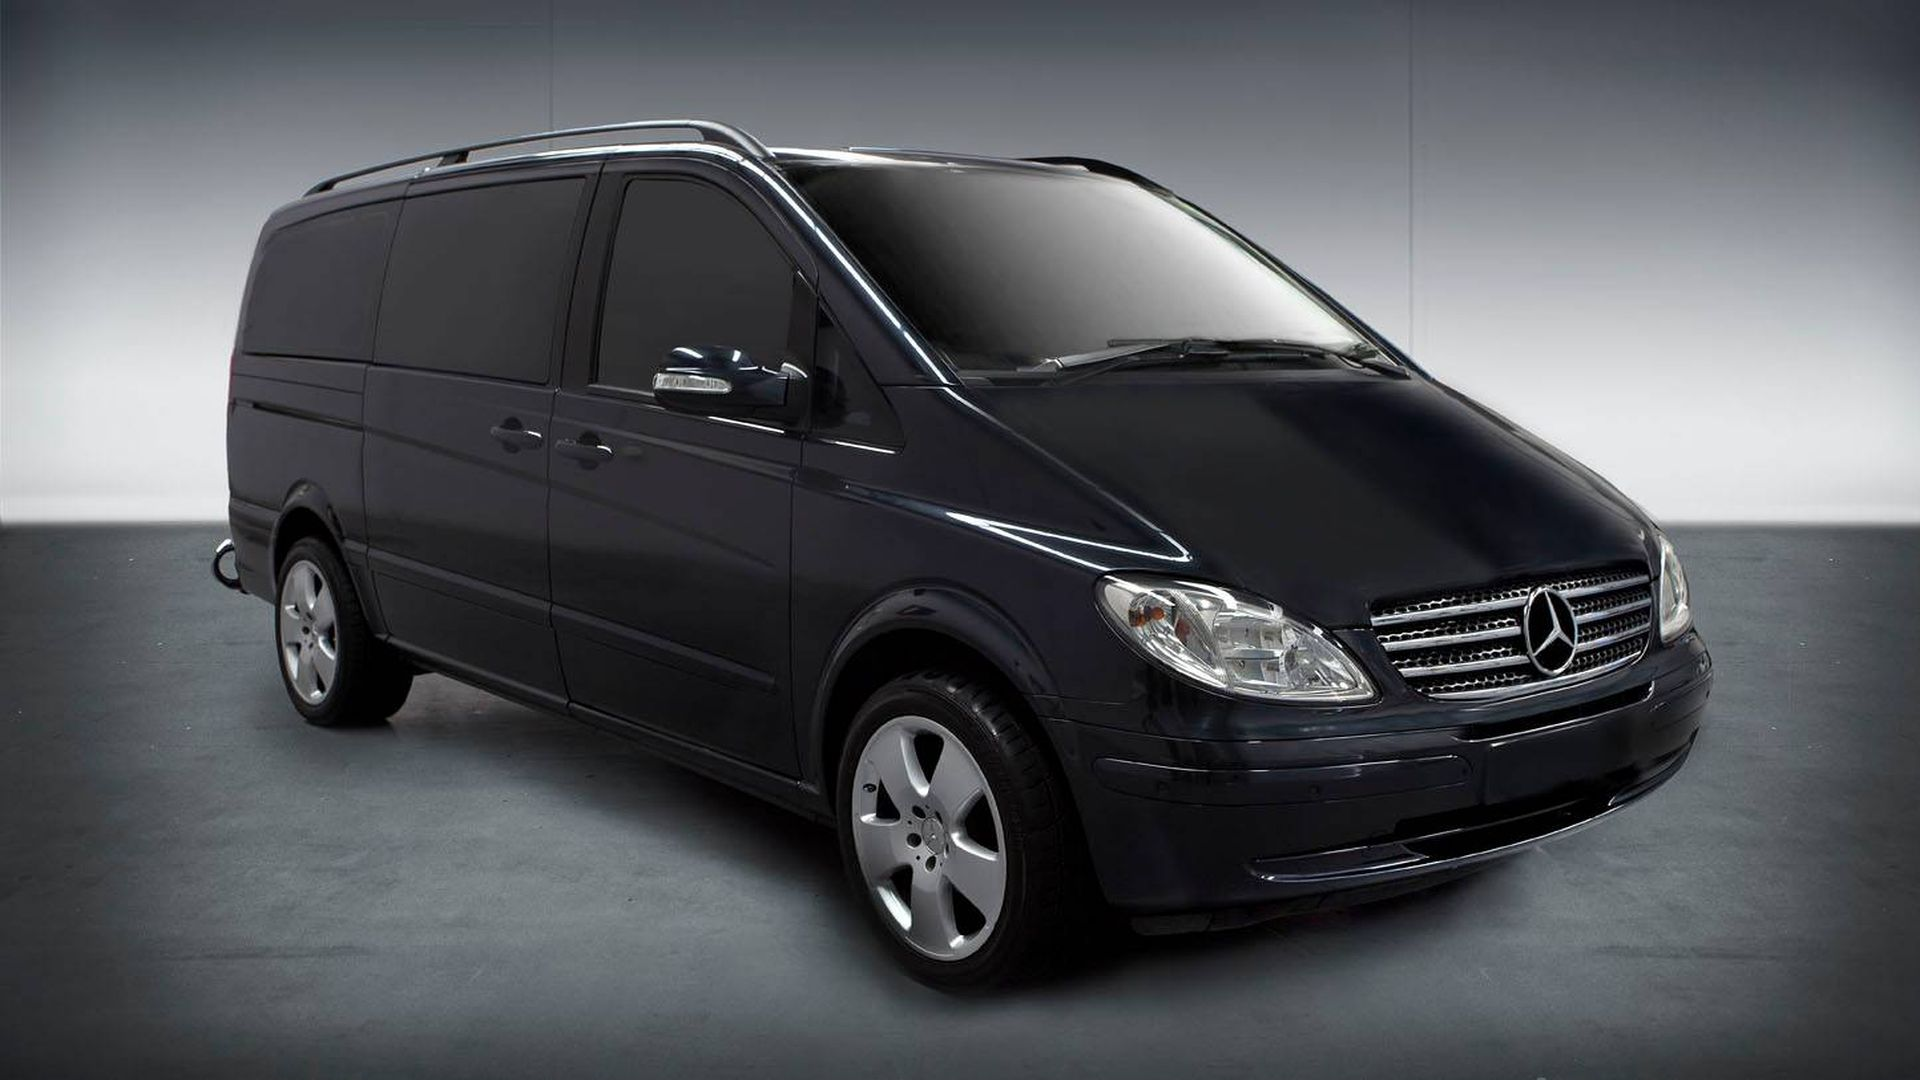 7 Seater Mercedes Viano